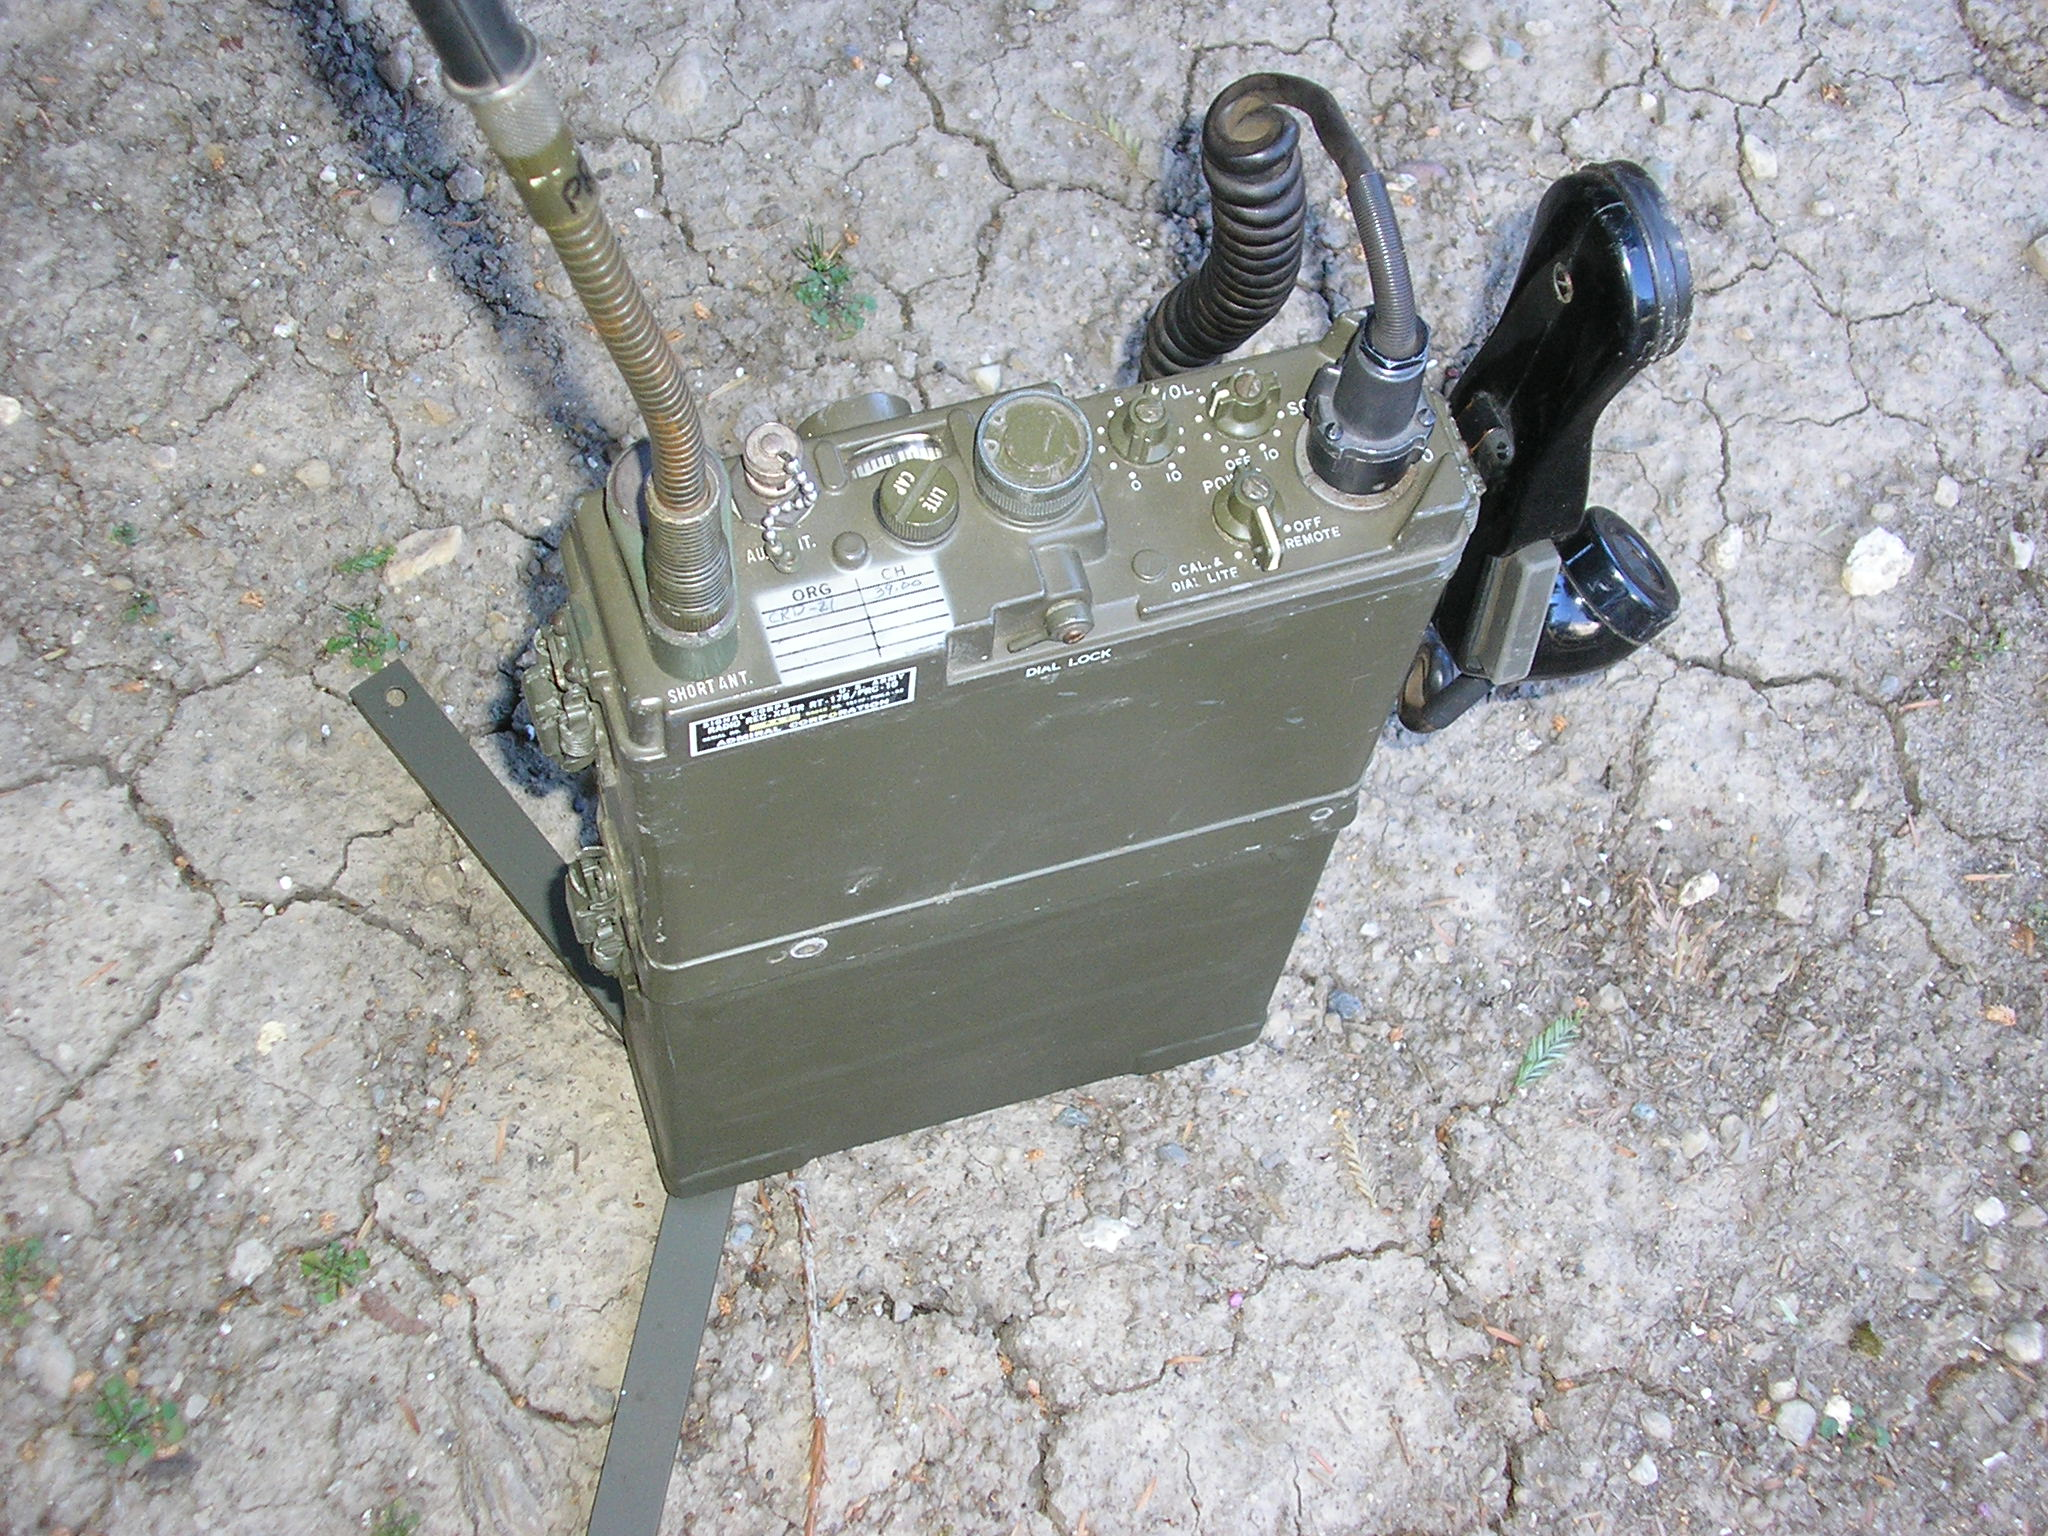 PRC-10 Ground Deployed with Swing-Out Legs